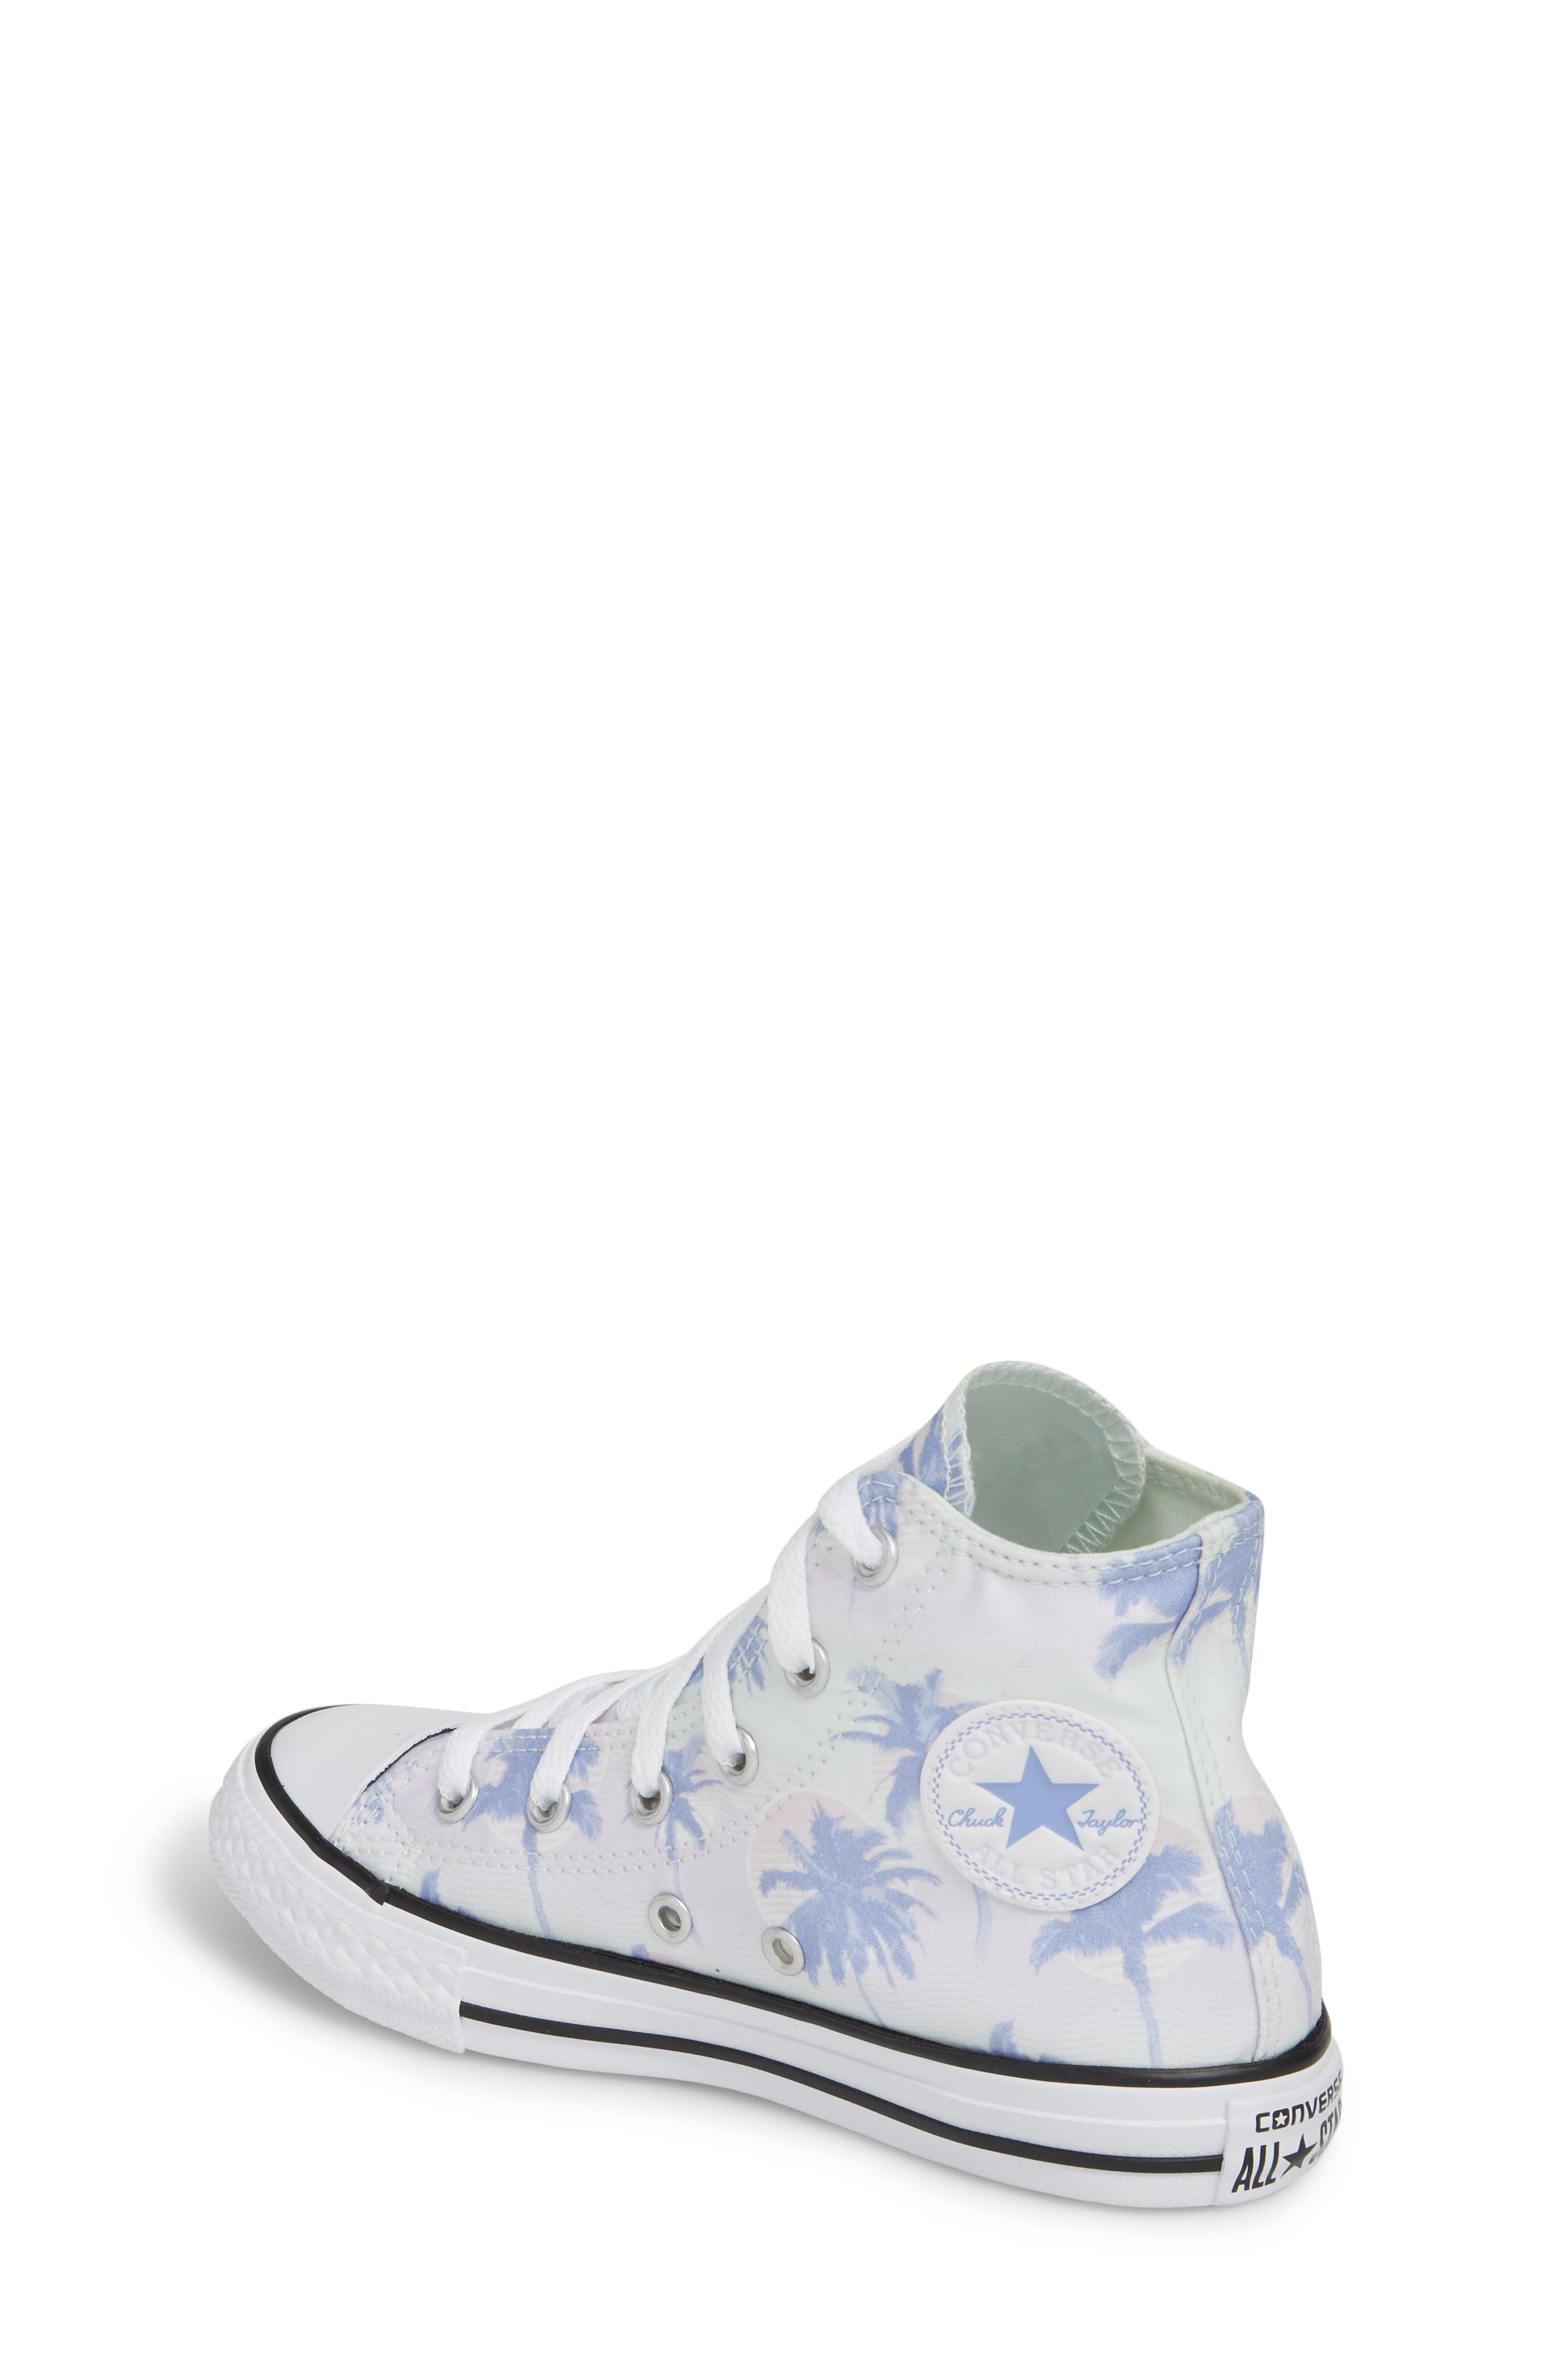 Chuck Taylor<sup>®</sup> All Star<sup>®</sup> Palm Tree High Top Sneaker,                             Alternate thumbnail 2, color,                             507